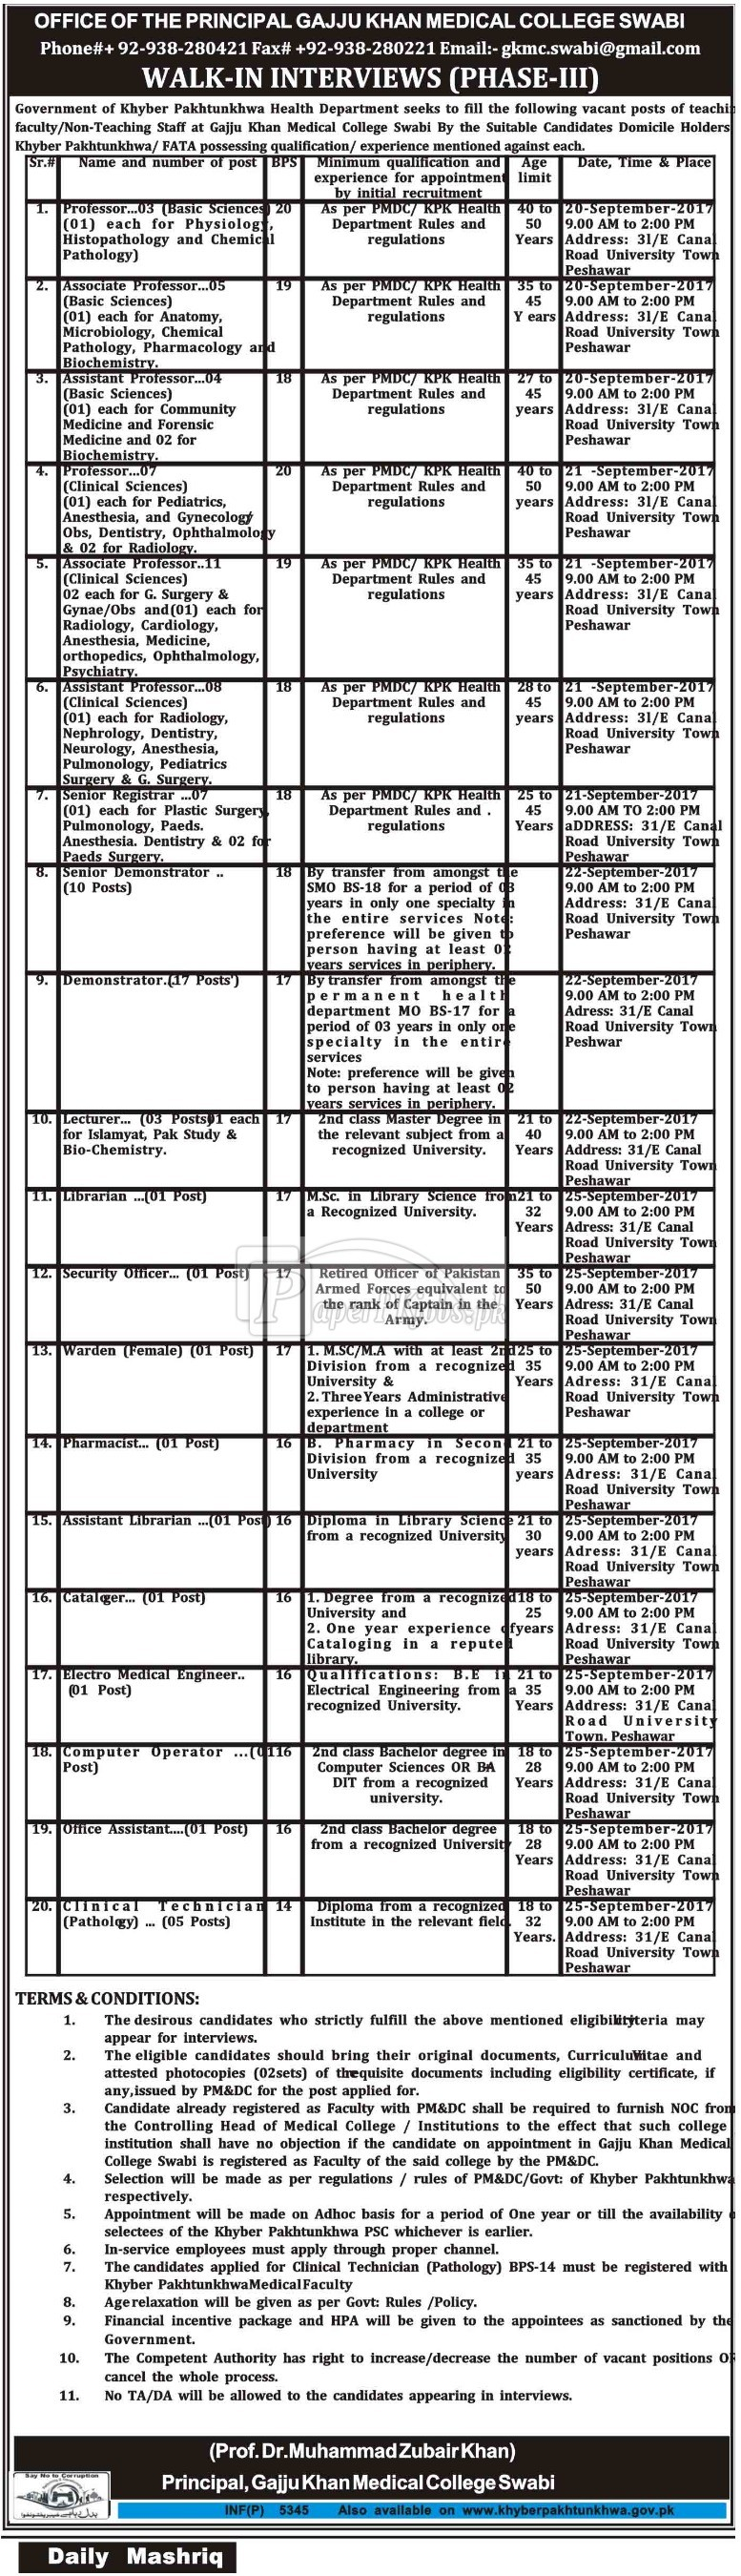 Gajju Khan Medical College Swabi Jobs 2017